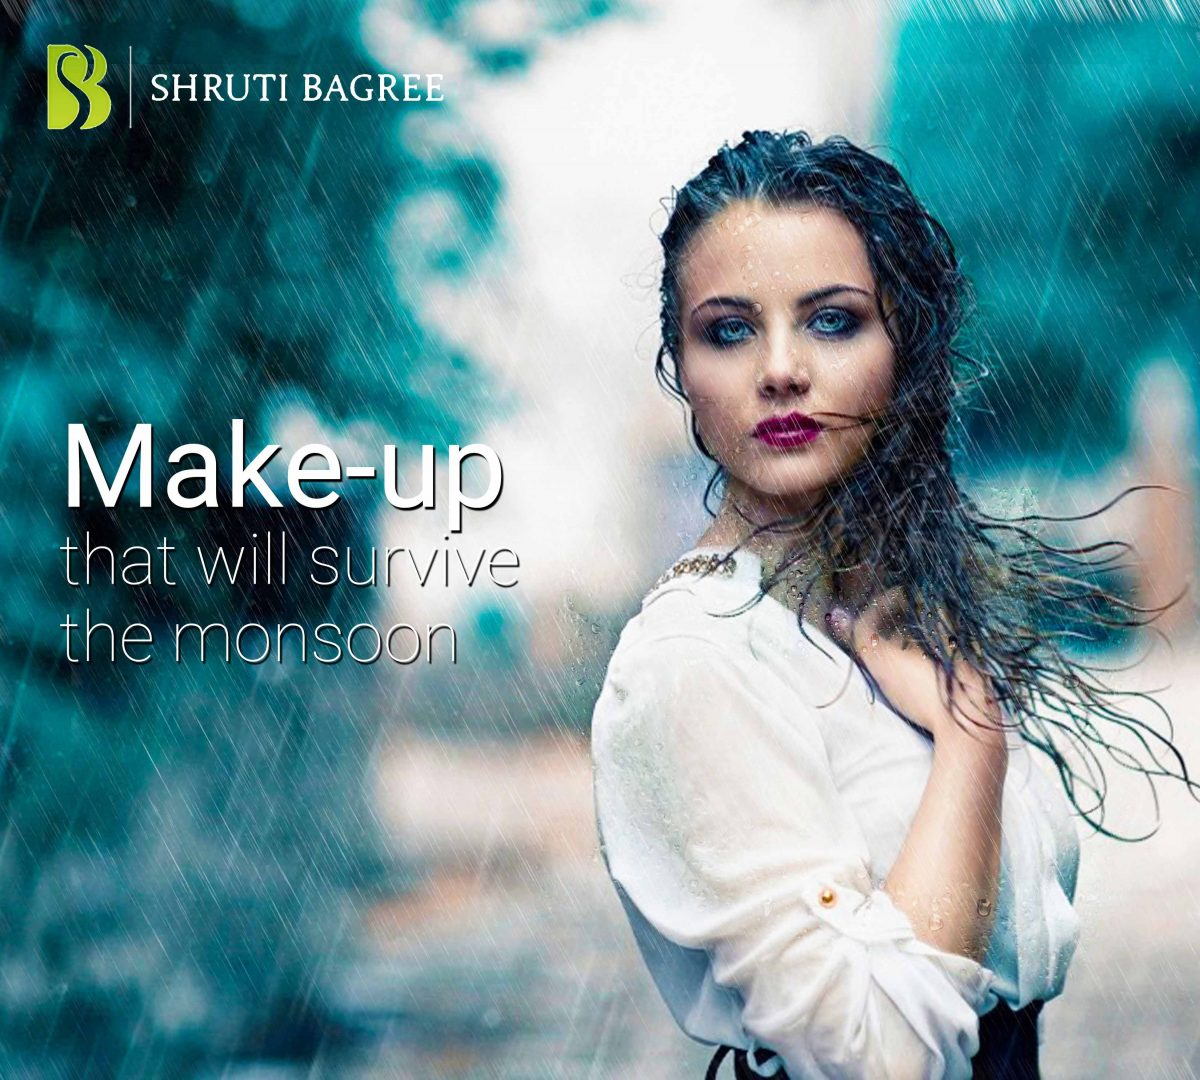 The Monsoon's Make-Up Look